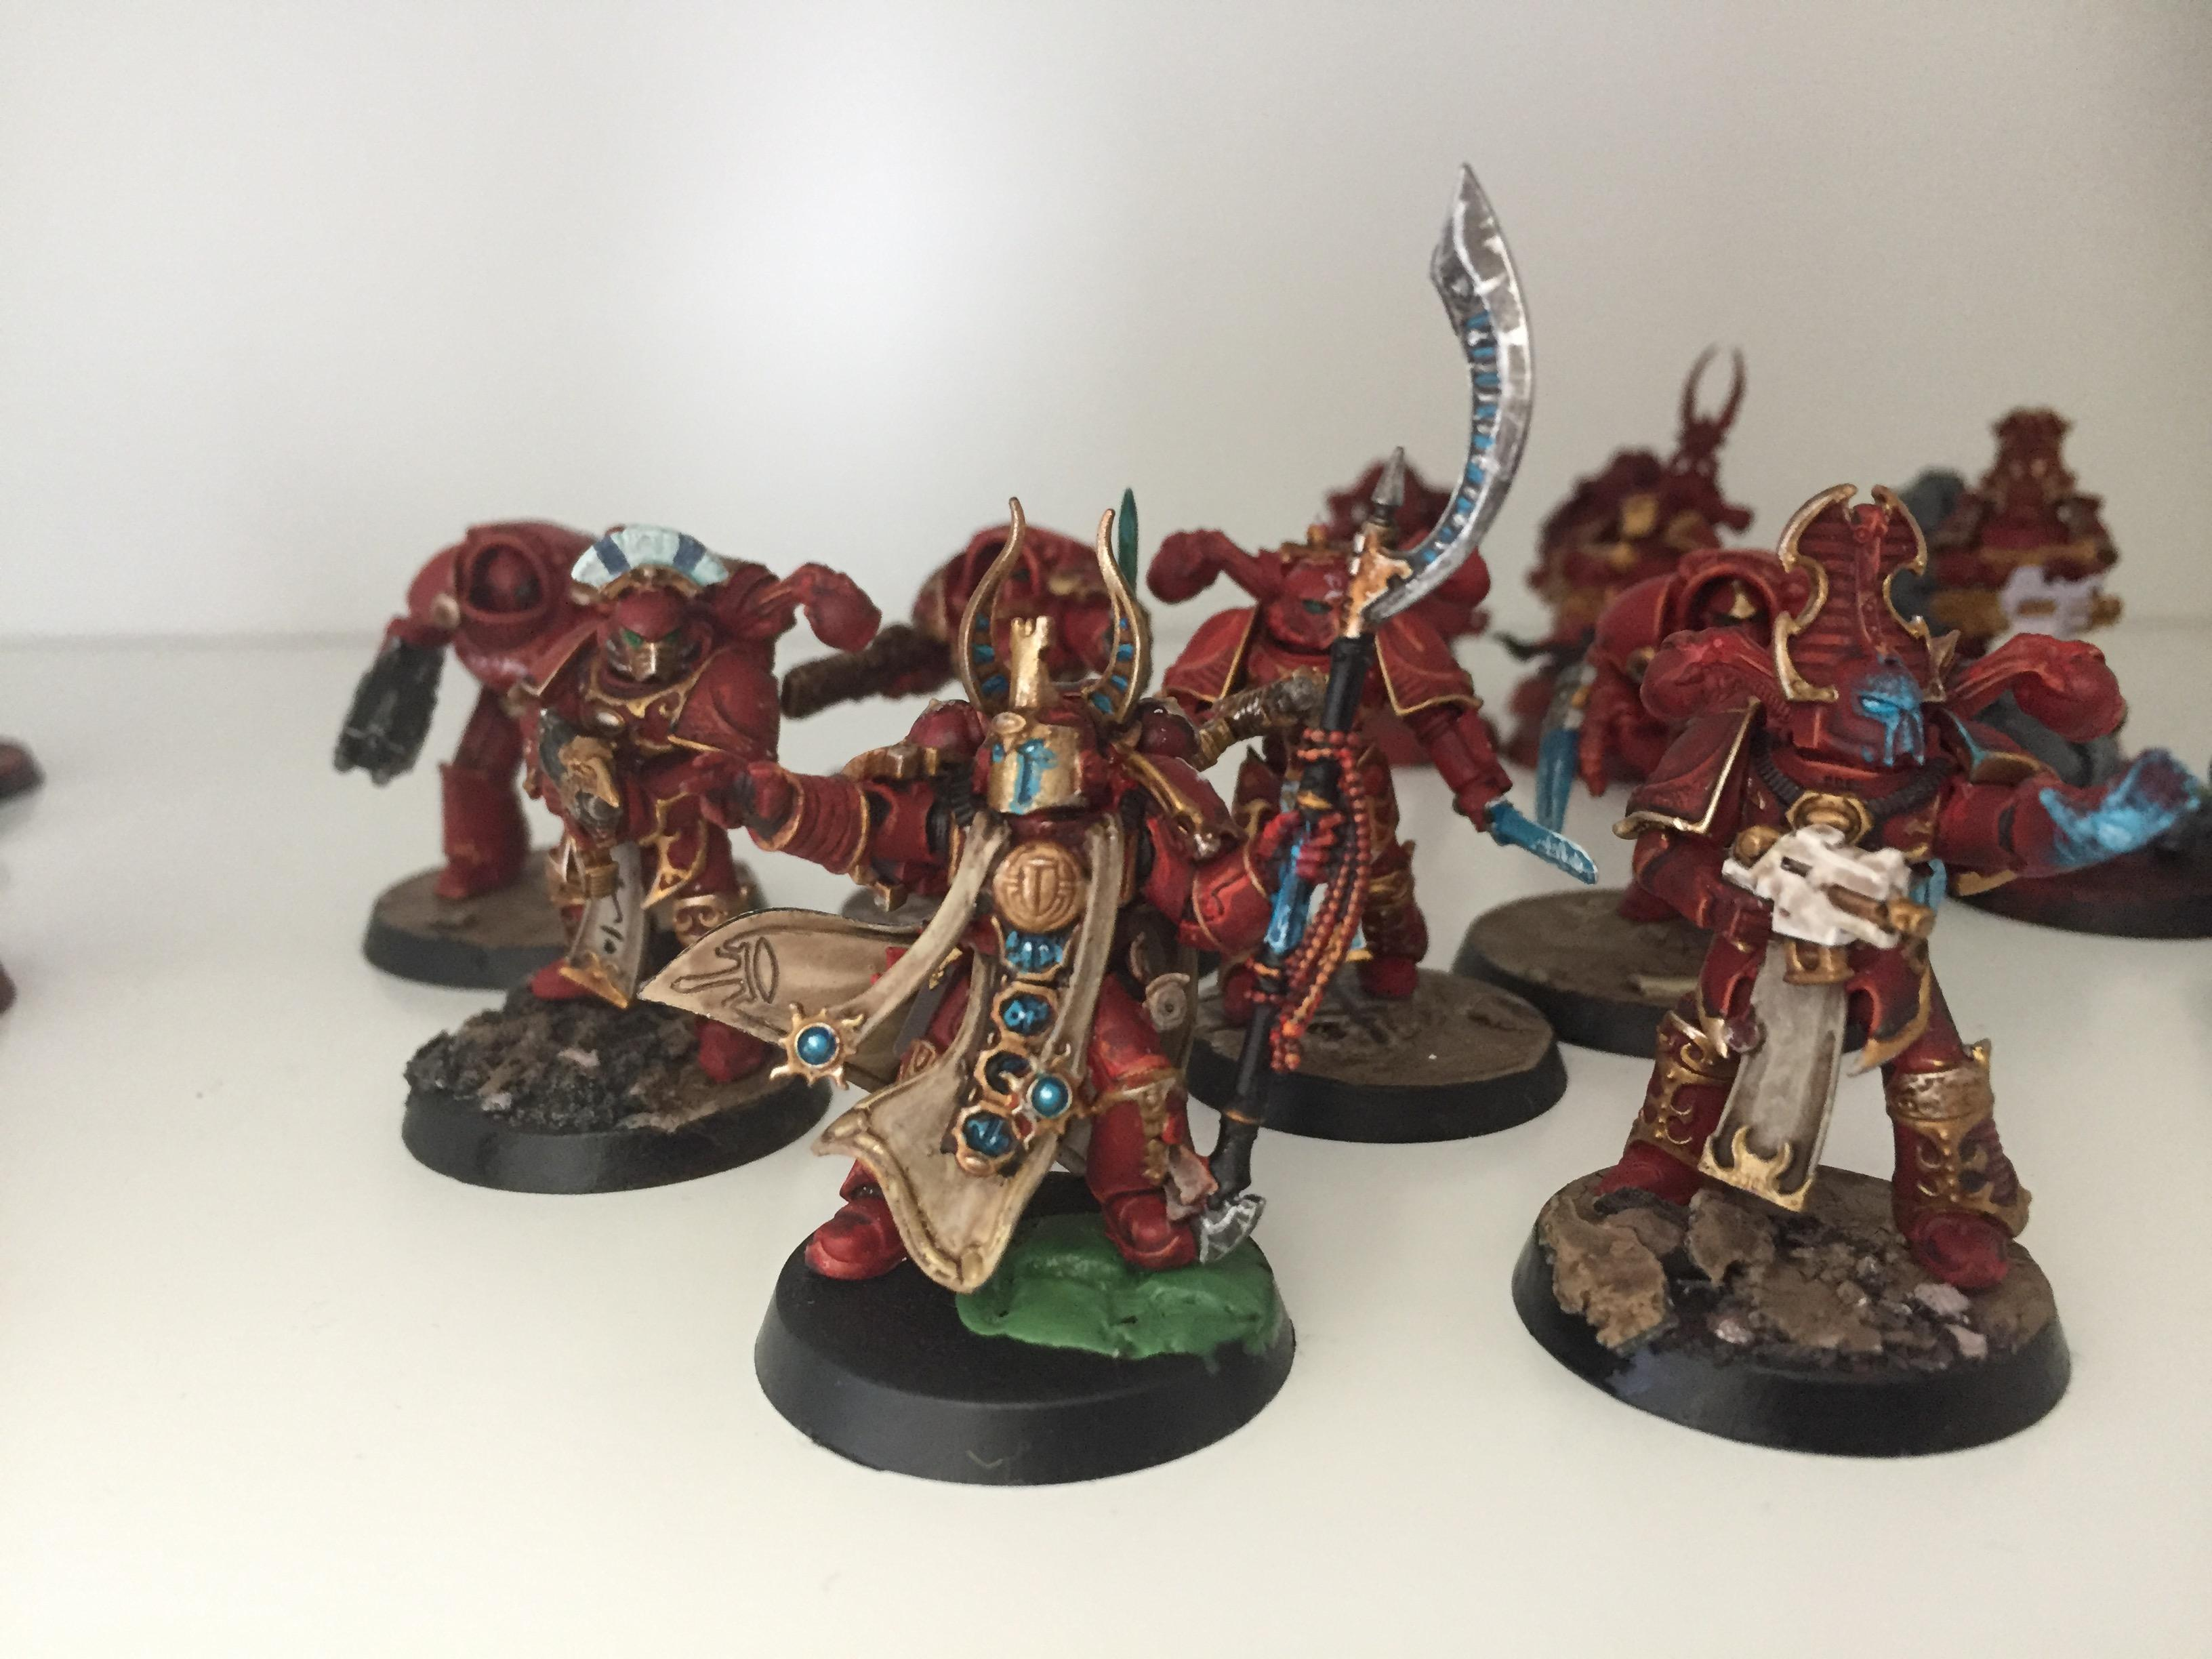 Ahriman and friends